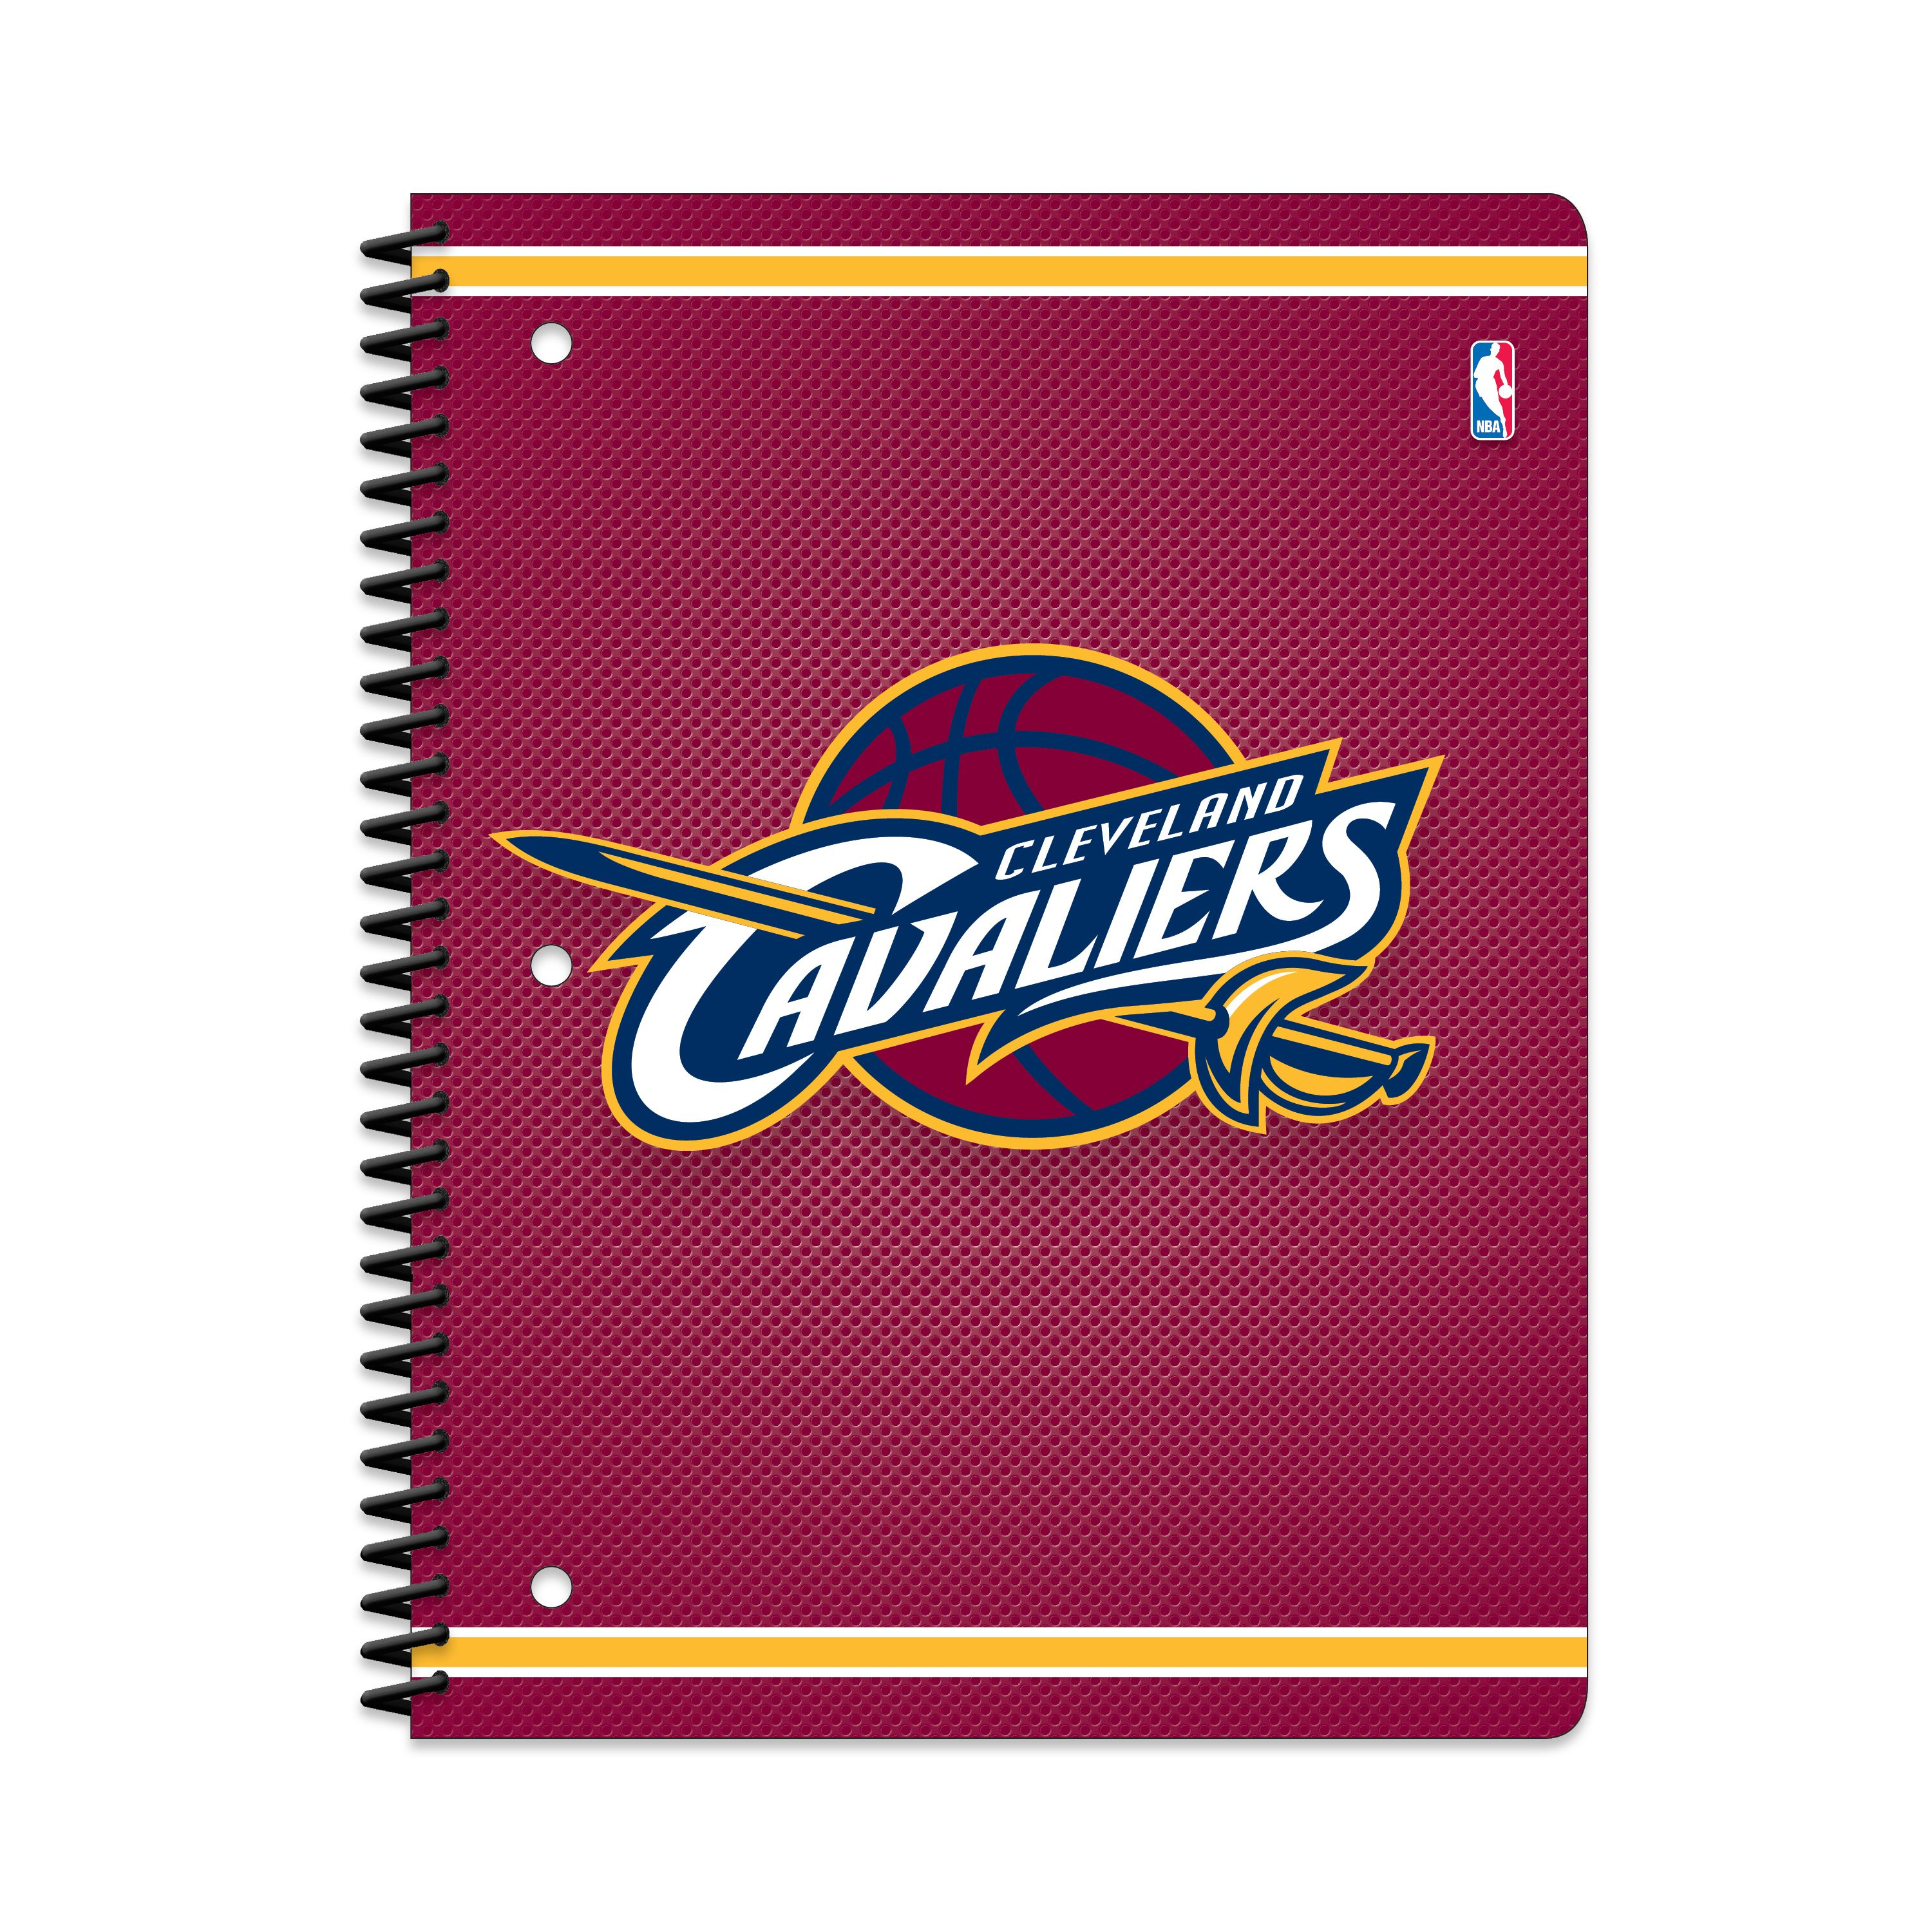 CLEVELAND CAVALIERS CLASSIC 1-SUBJECT NOTEBOOK